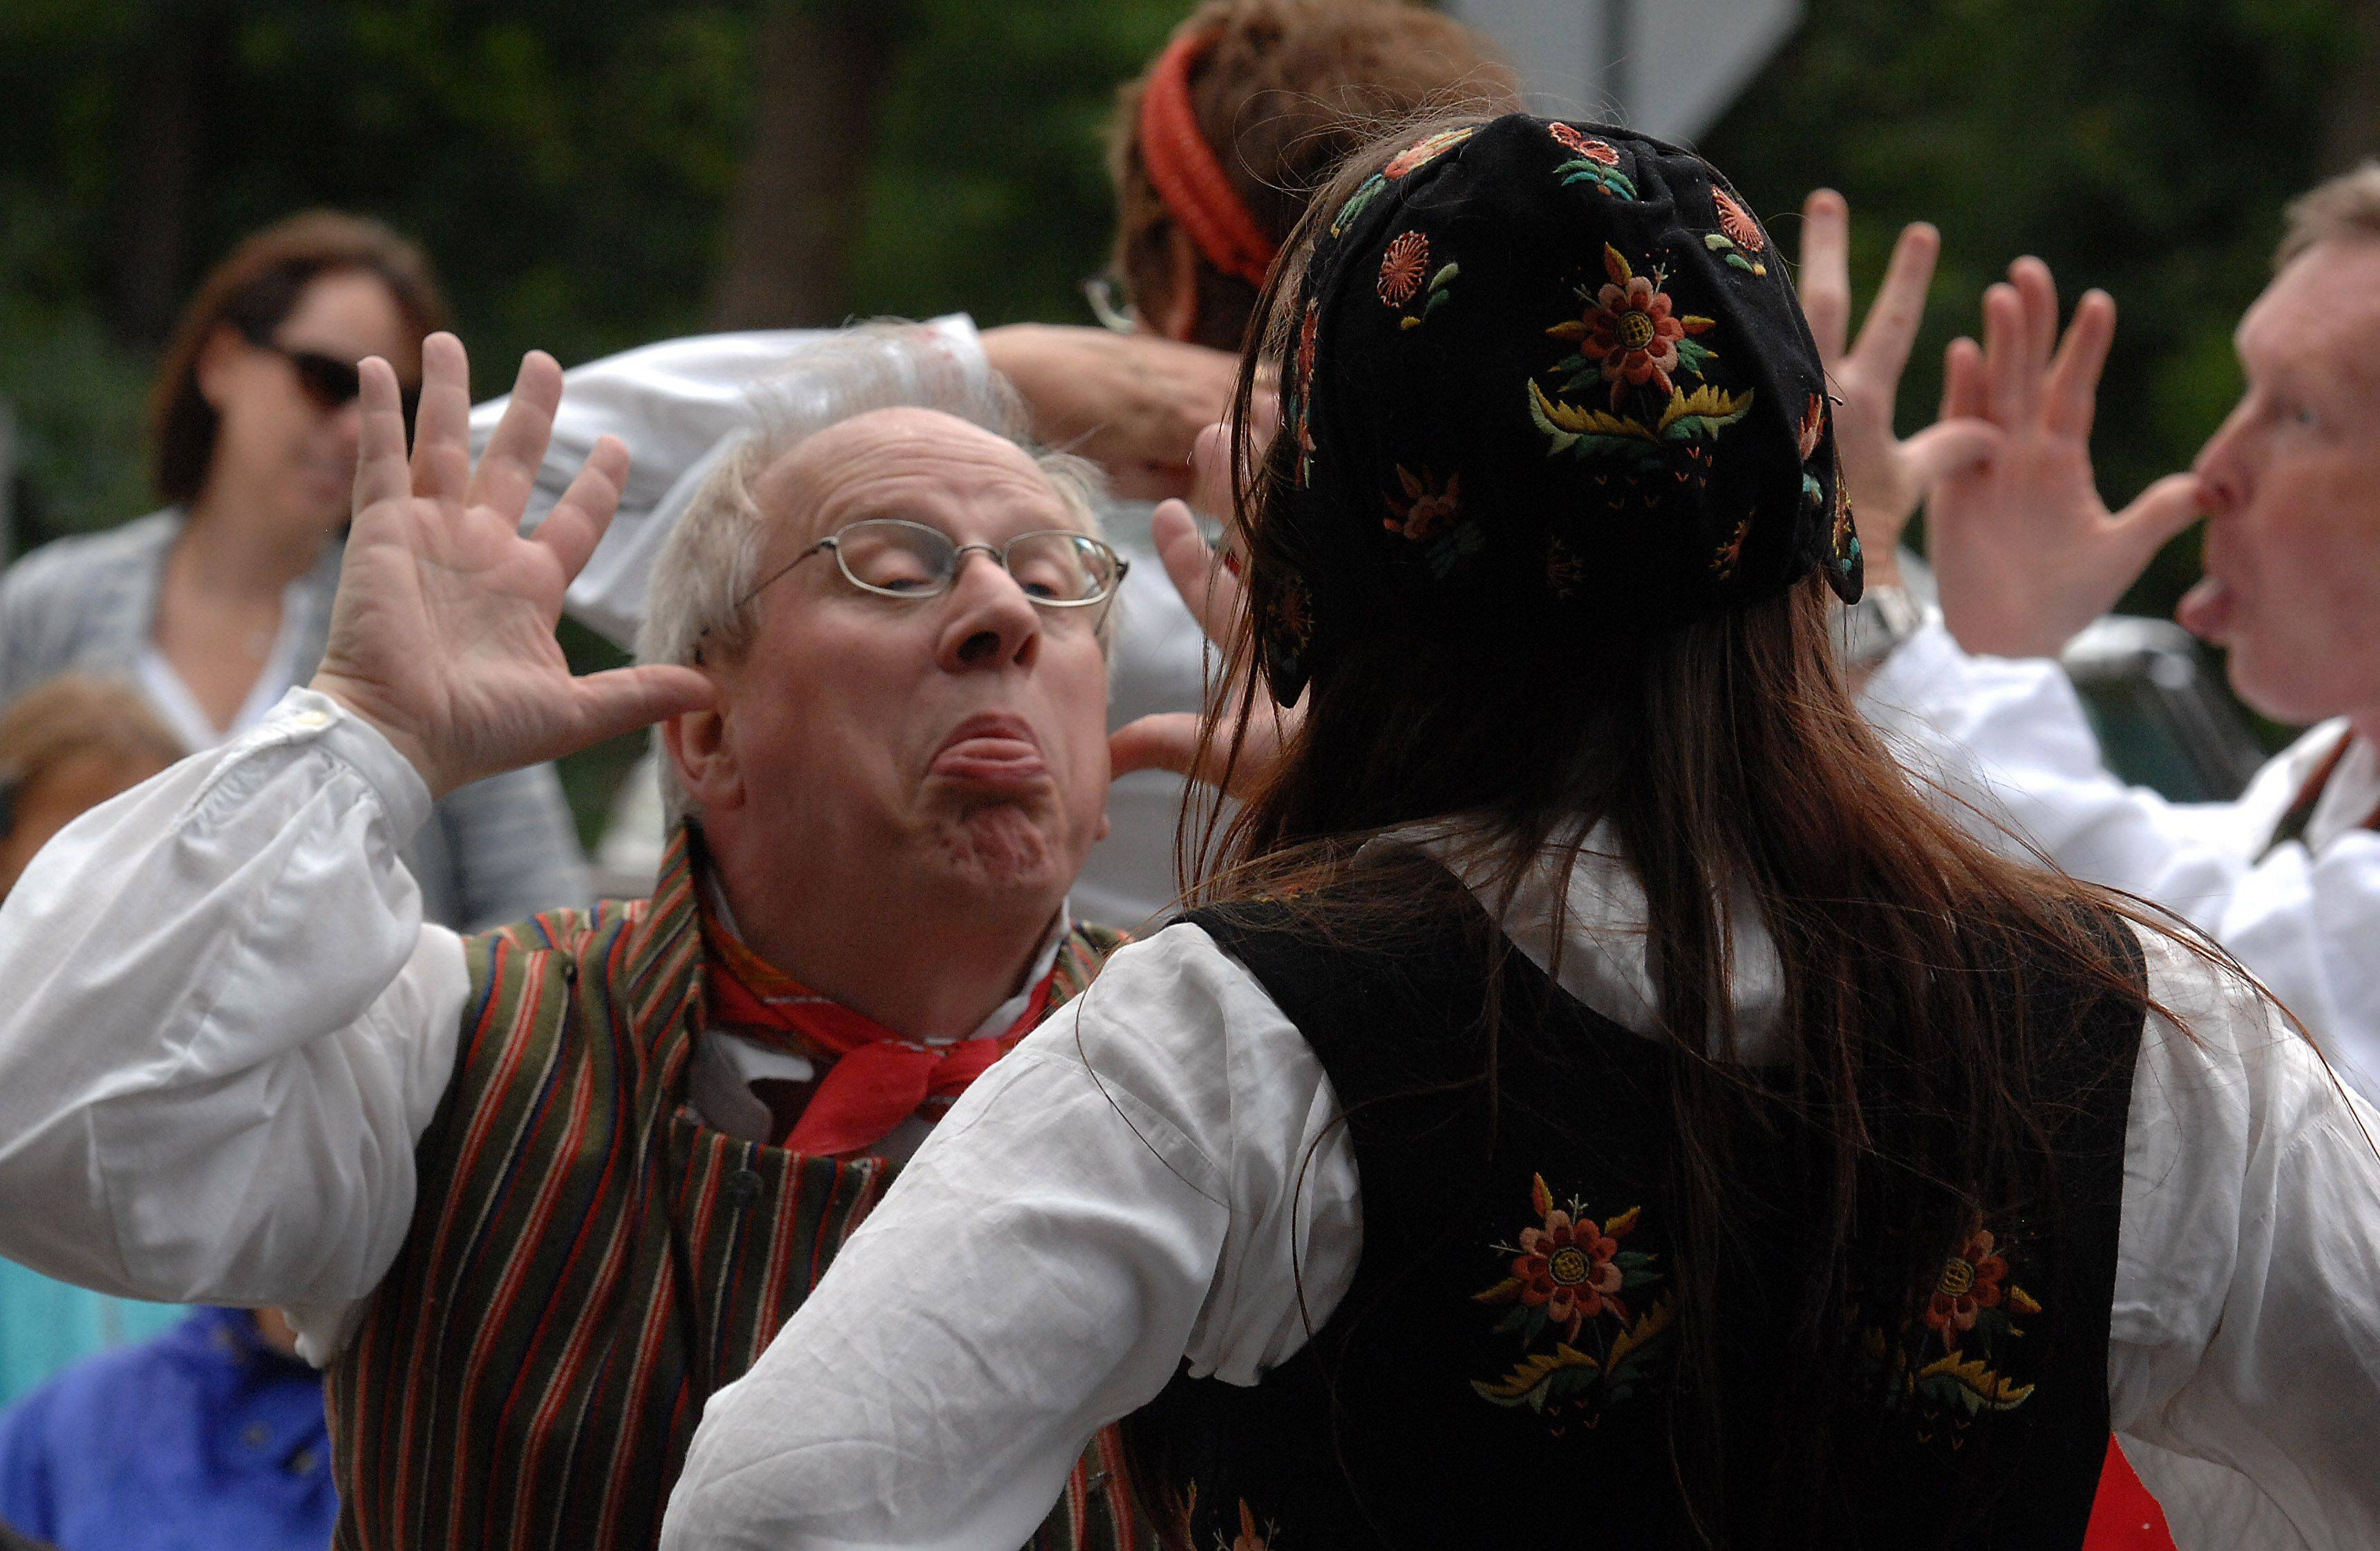 Bruce Carlson of North Brook does the Norwegian Snus Polka with his dance partner during the Long Grove World Tour International on Monday.